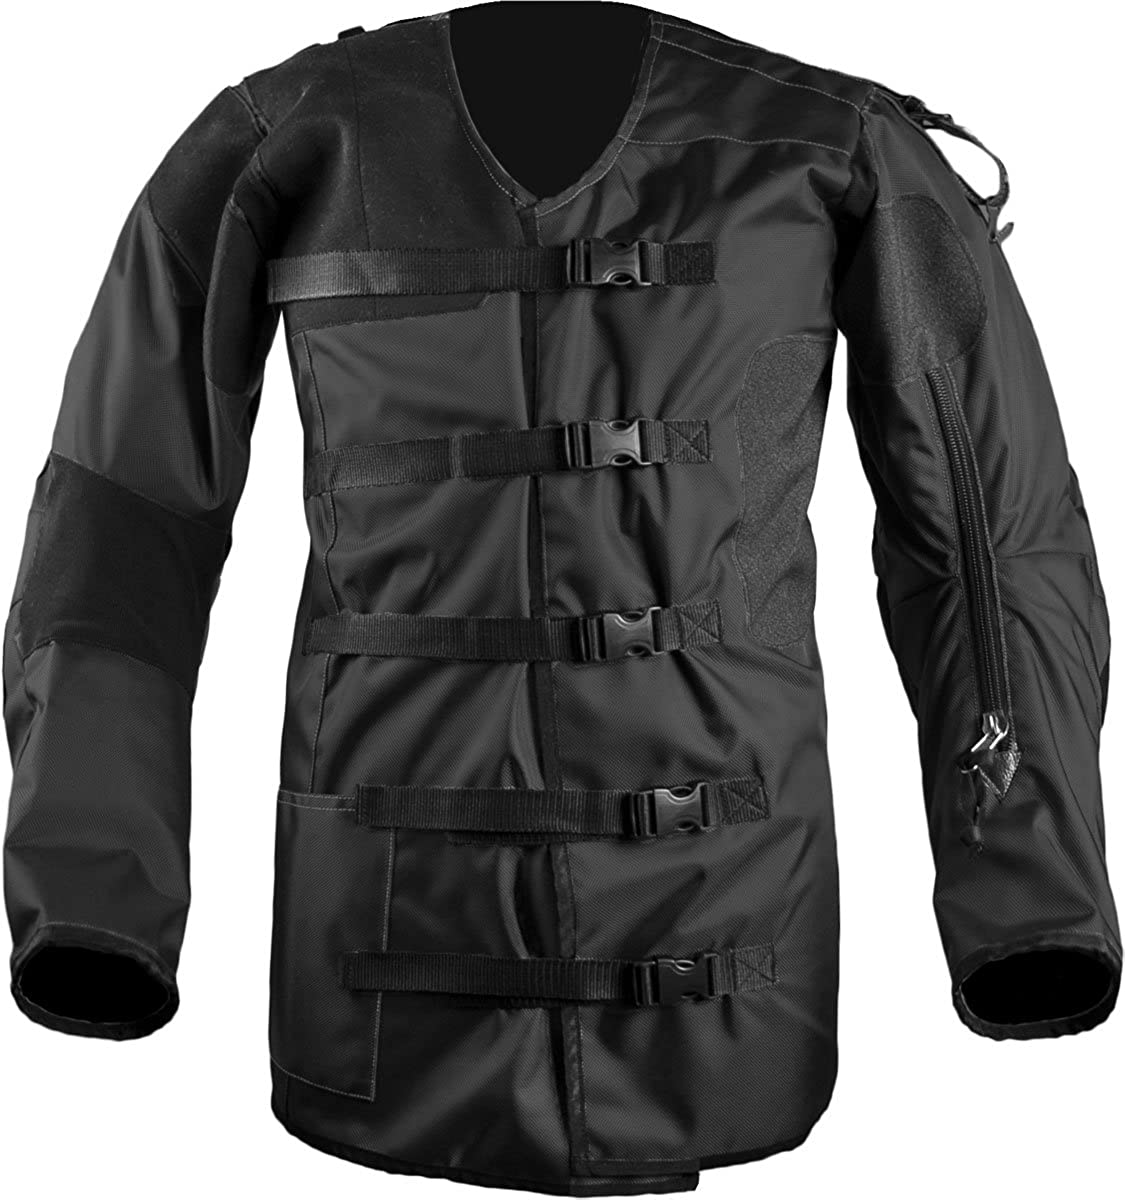 TheSupplyRoom Right Spring Max 90% OFF new work Handed Shooting Nylon Jacket